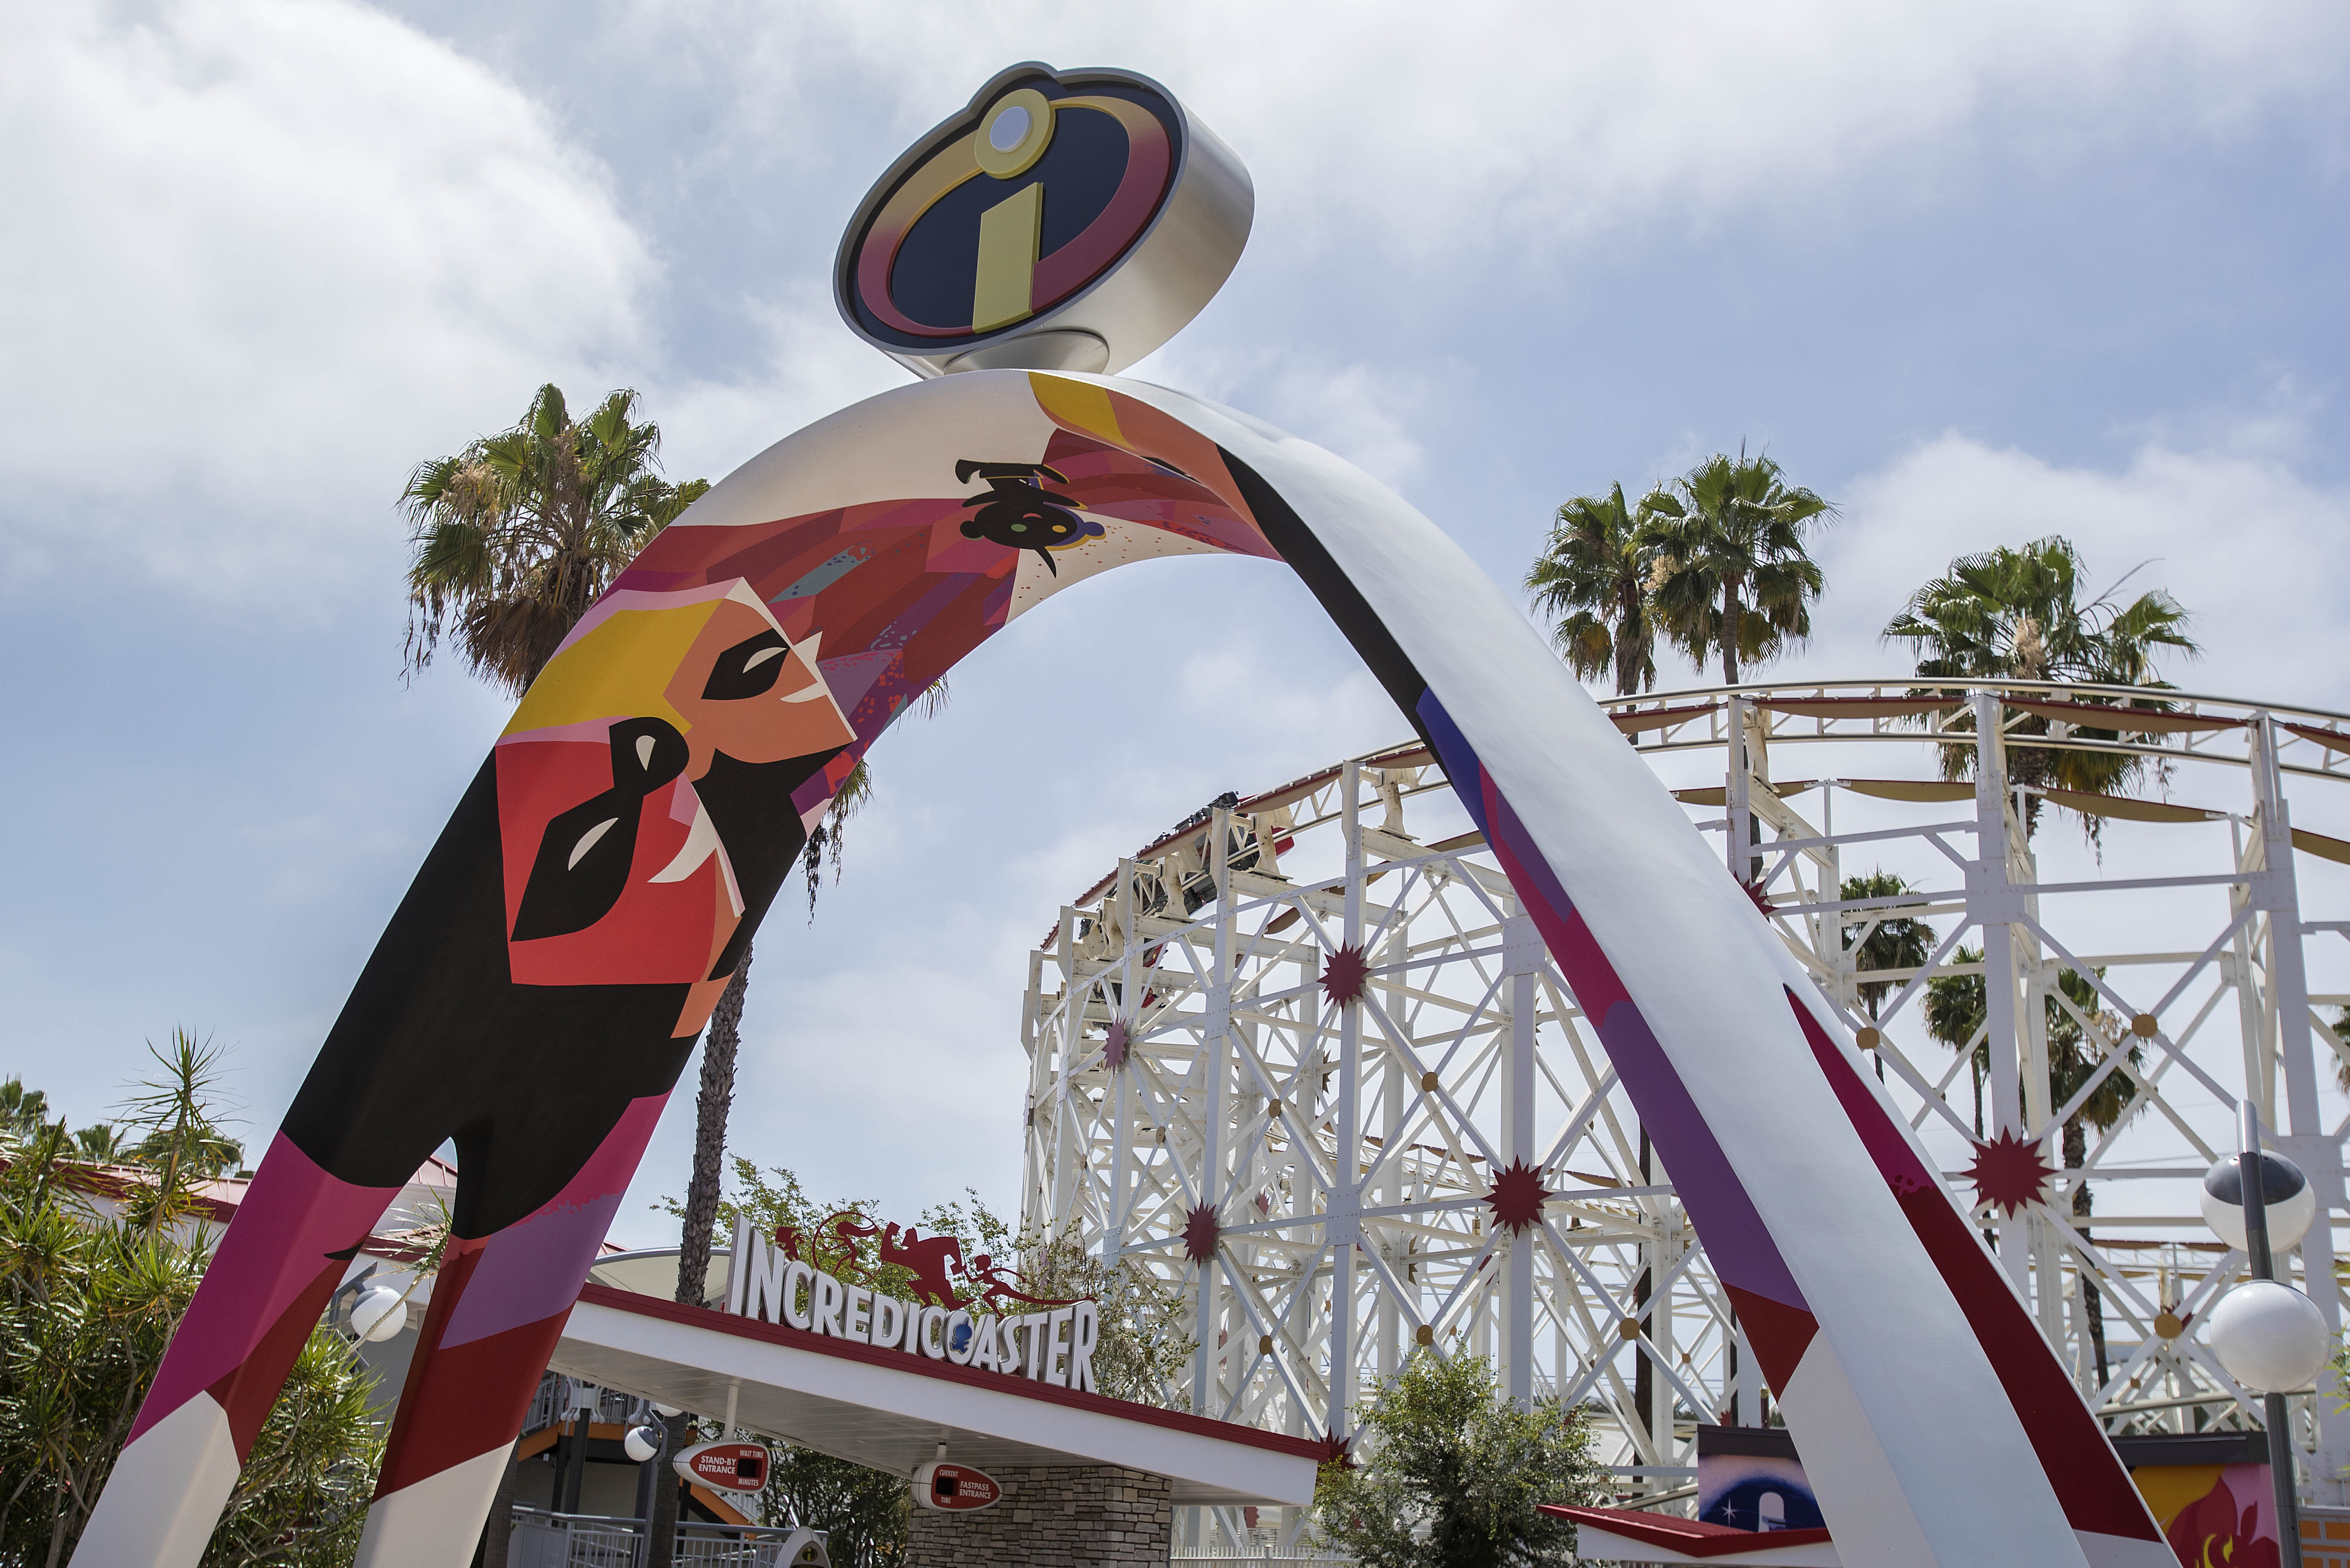 """INCREDIBLES PARK IN PIXAR PIER (ANAHEIM, Calif.) - Inspired by """"The Incredibles"""" and """"Incredibles 2,"""" Incredibles Park features mid-century modern design aesthetics. Guests will enter through an archway where the iconic Incredibles logo will be seen overhead. Once inside, the new Incredicoaster will take guests on a thrilling race alongside the Parr family. Upon exiting the attraction, the Jack-Jack Cookie Num Nums stand will tempt guests with freshly-baked treats. (Joshua Sudock/Disneyland Resort)"""